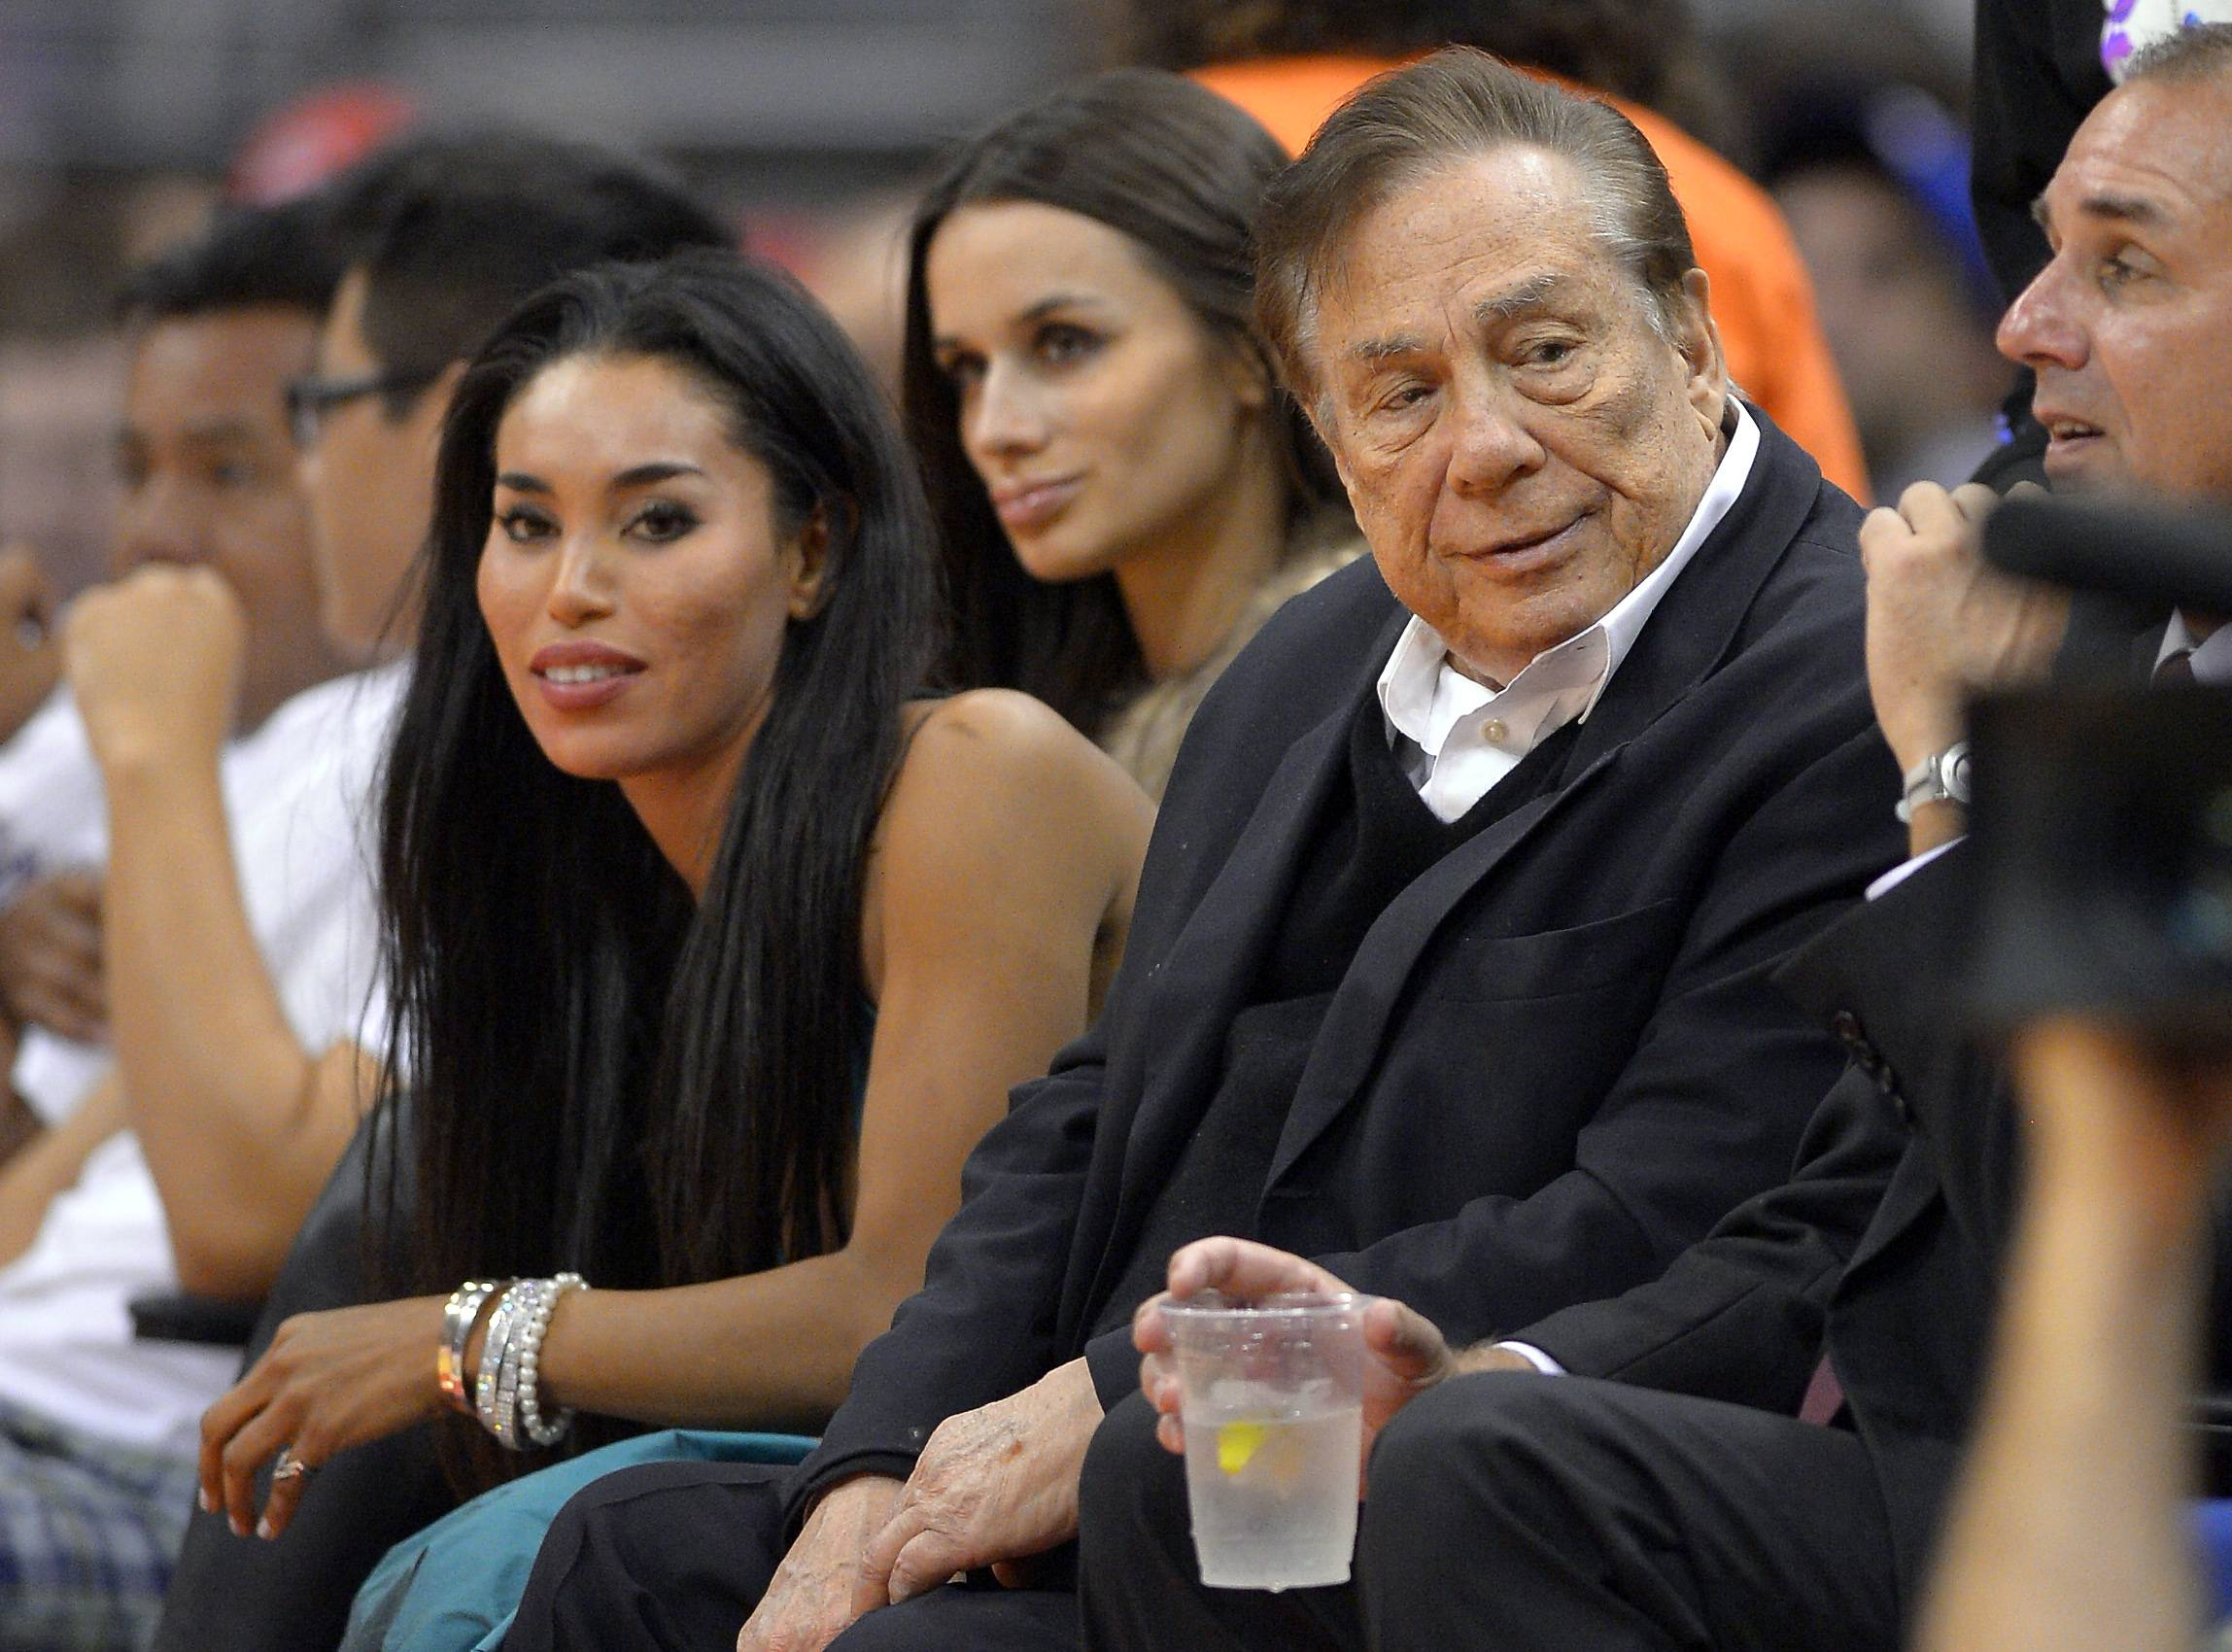 Los Angeles Clippers owner Donald Sterling, right, and V. Stiviano, left, watch the Clippers play the Sacramento Kings during the first half of an NBA basketball game in Los Angeles Oct. 25, 2013.